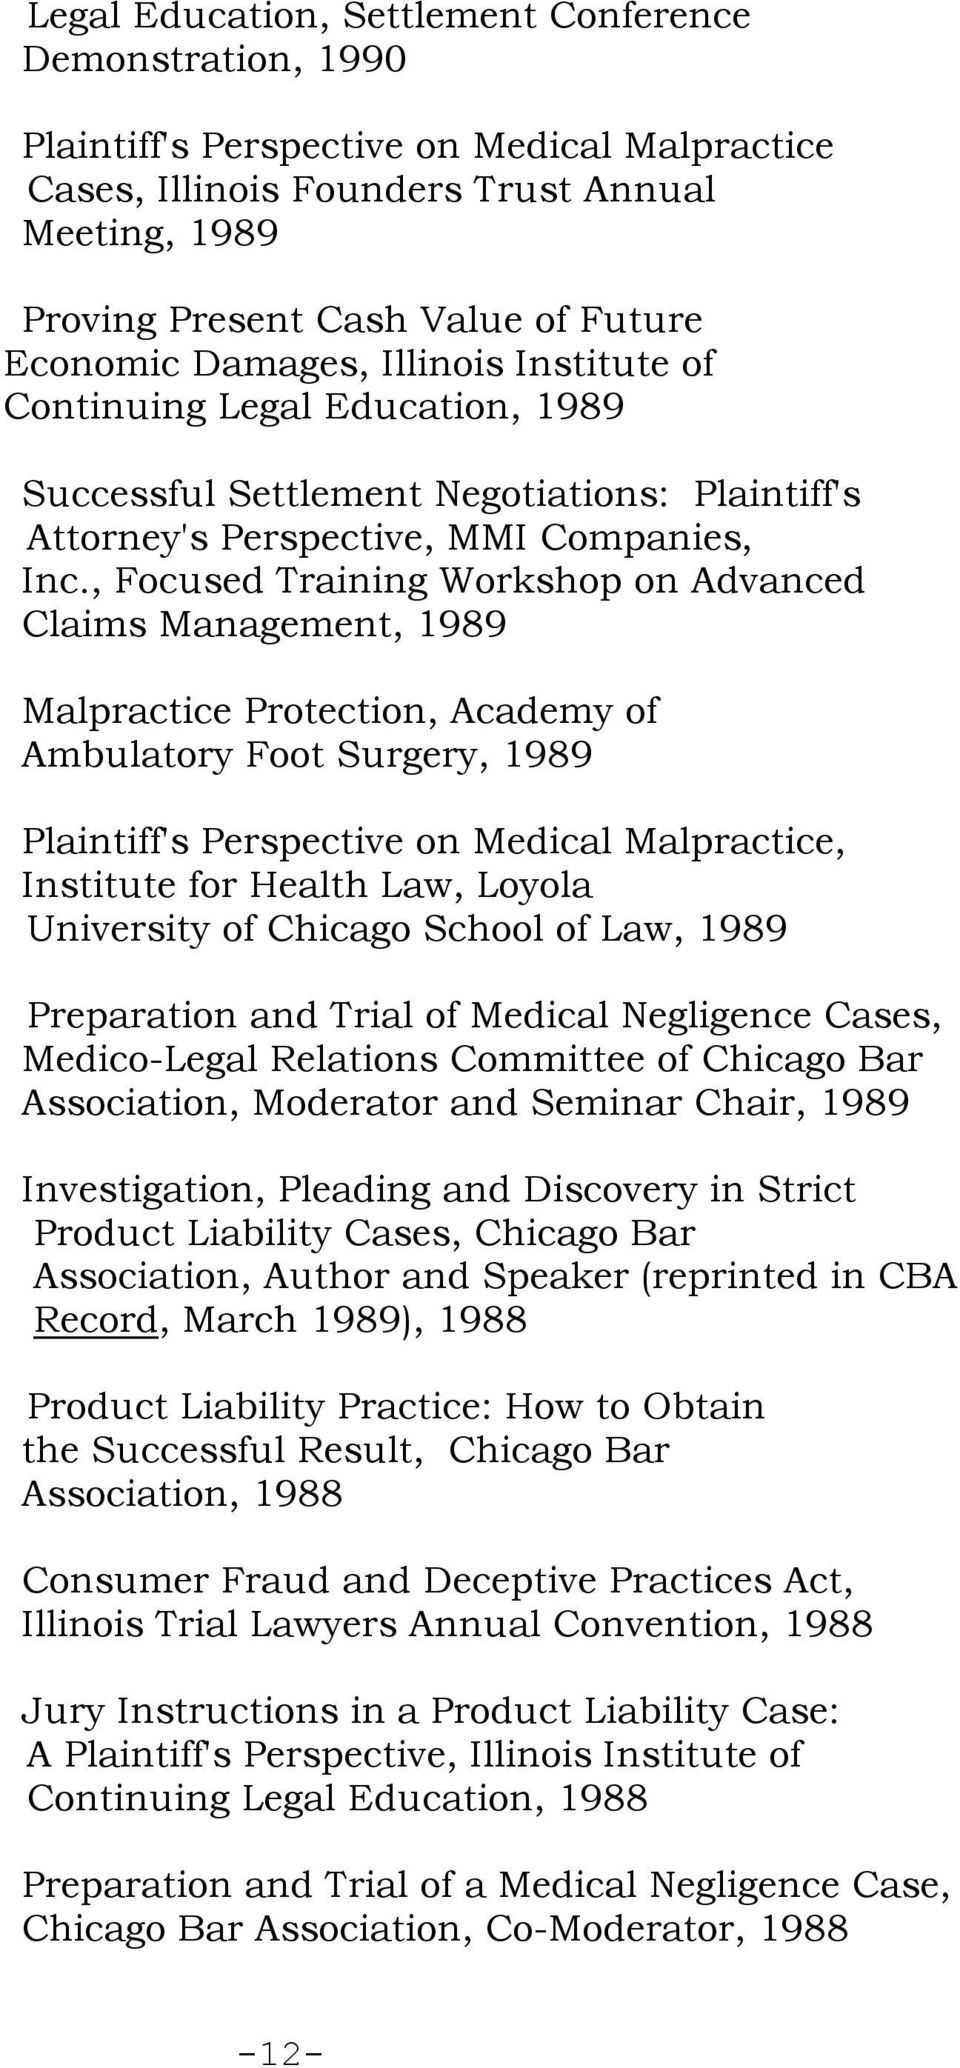 , Focused Training Workshop on Advanced Claims Management, 1989 Malpractice Protection, Academy of Ambulatory Foot Surgery, 1989 Plaintiff's Perspective on Medical Malpractice, Institute for Health